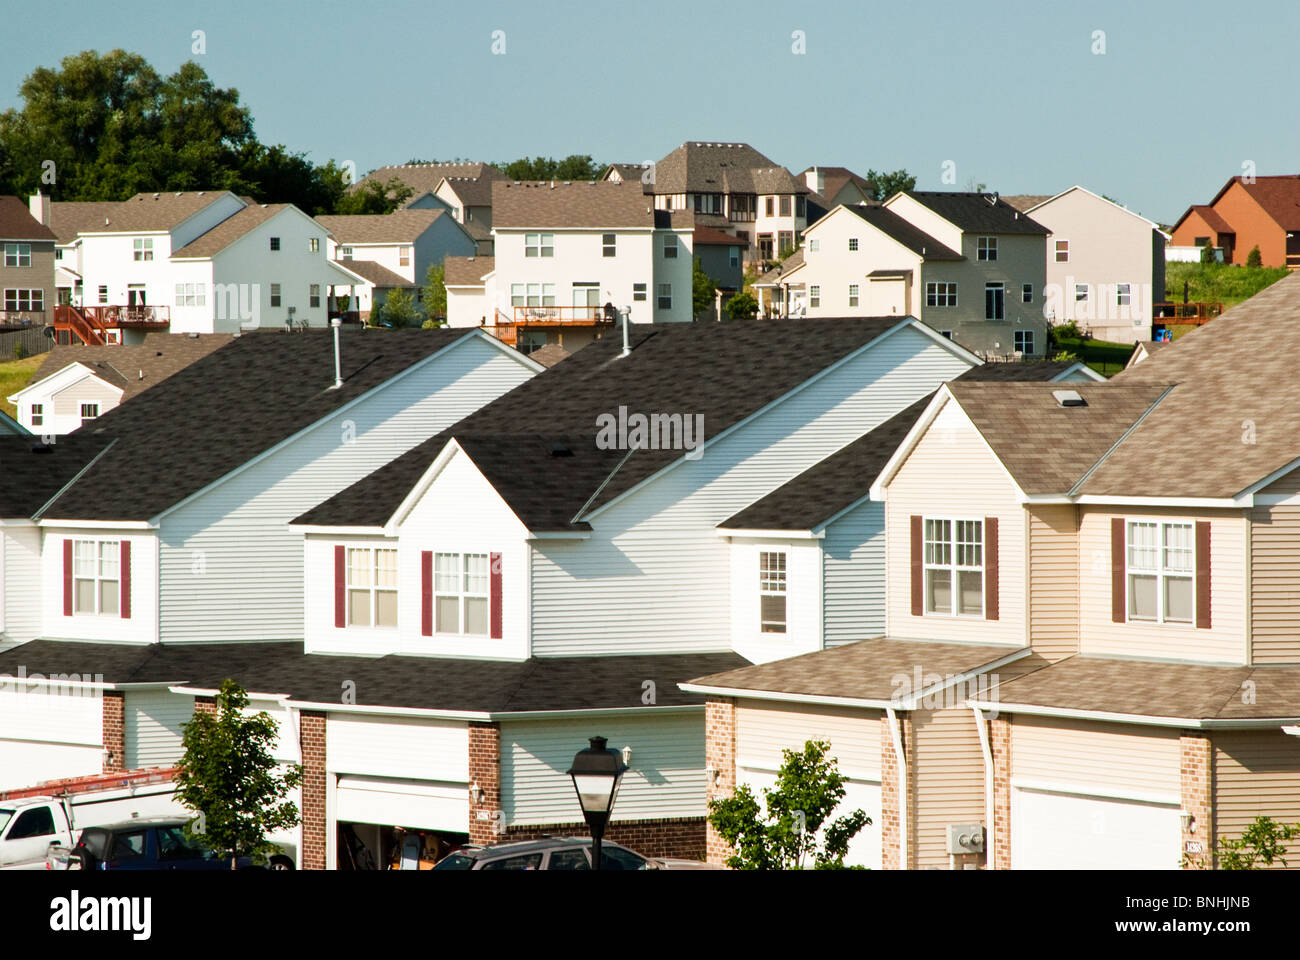 View of multiple family residences in a suburban neighborhood. Single family homes are seen in the background. - Stock Image